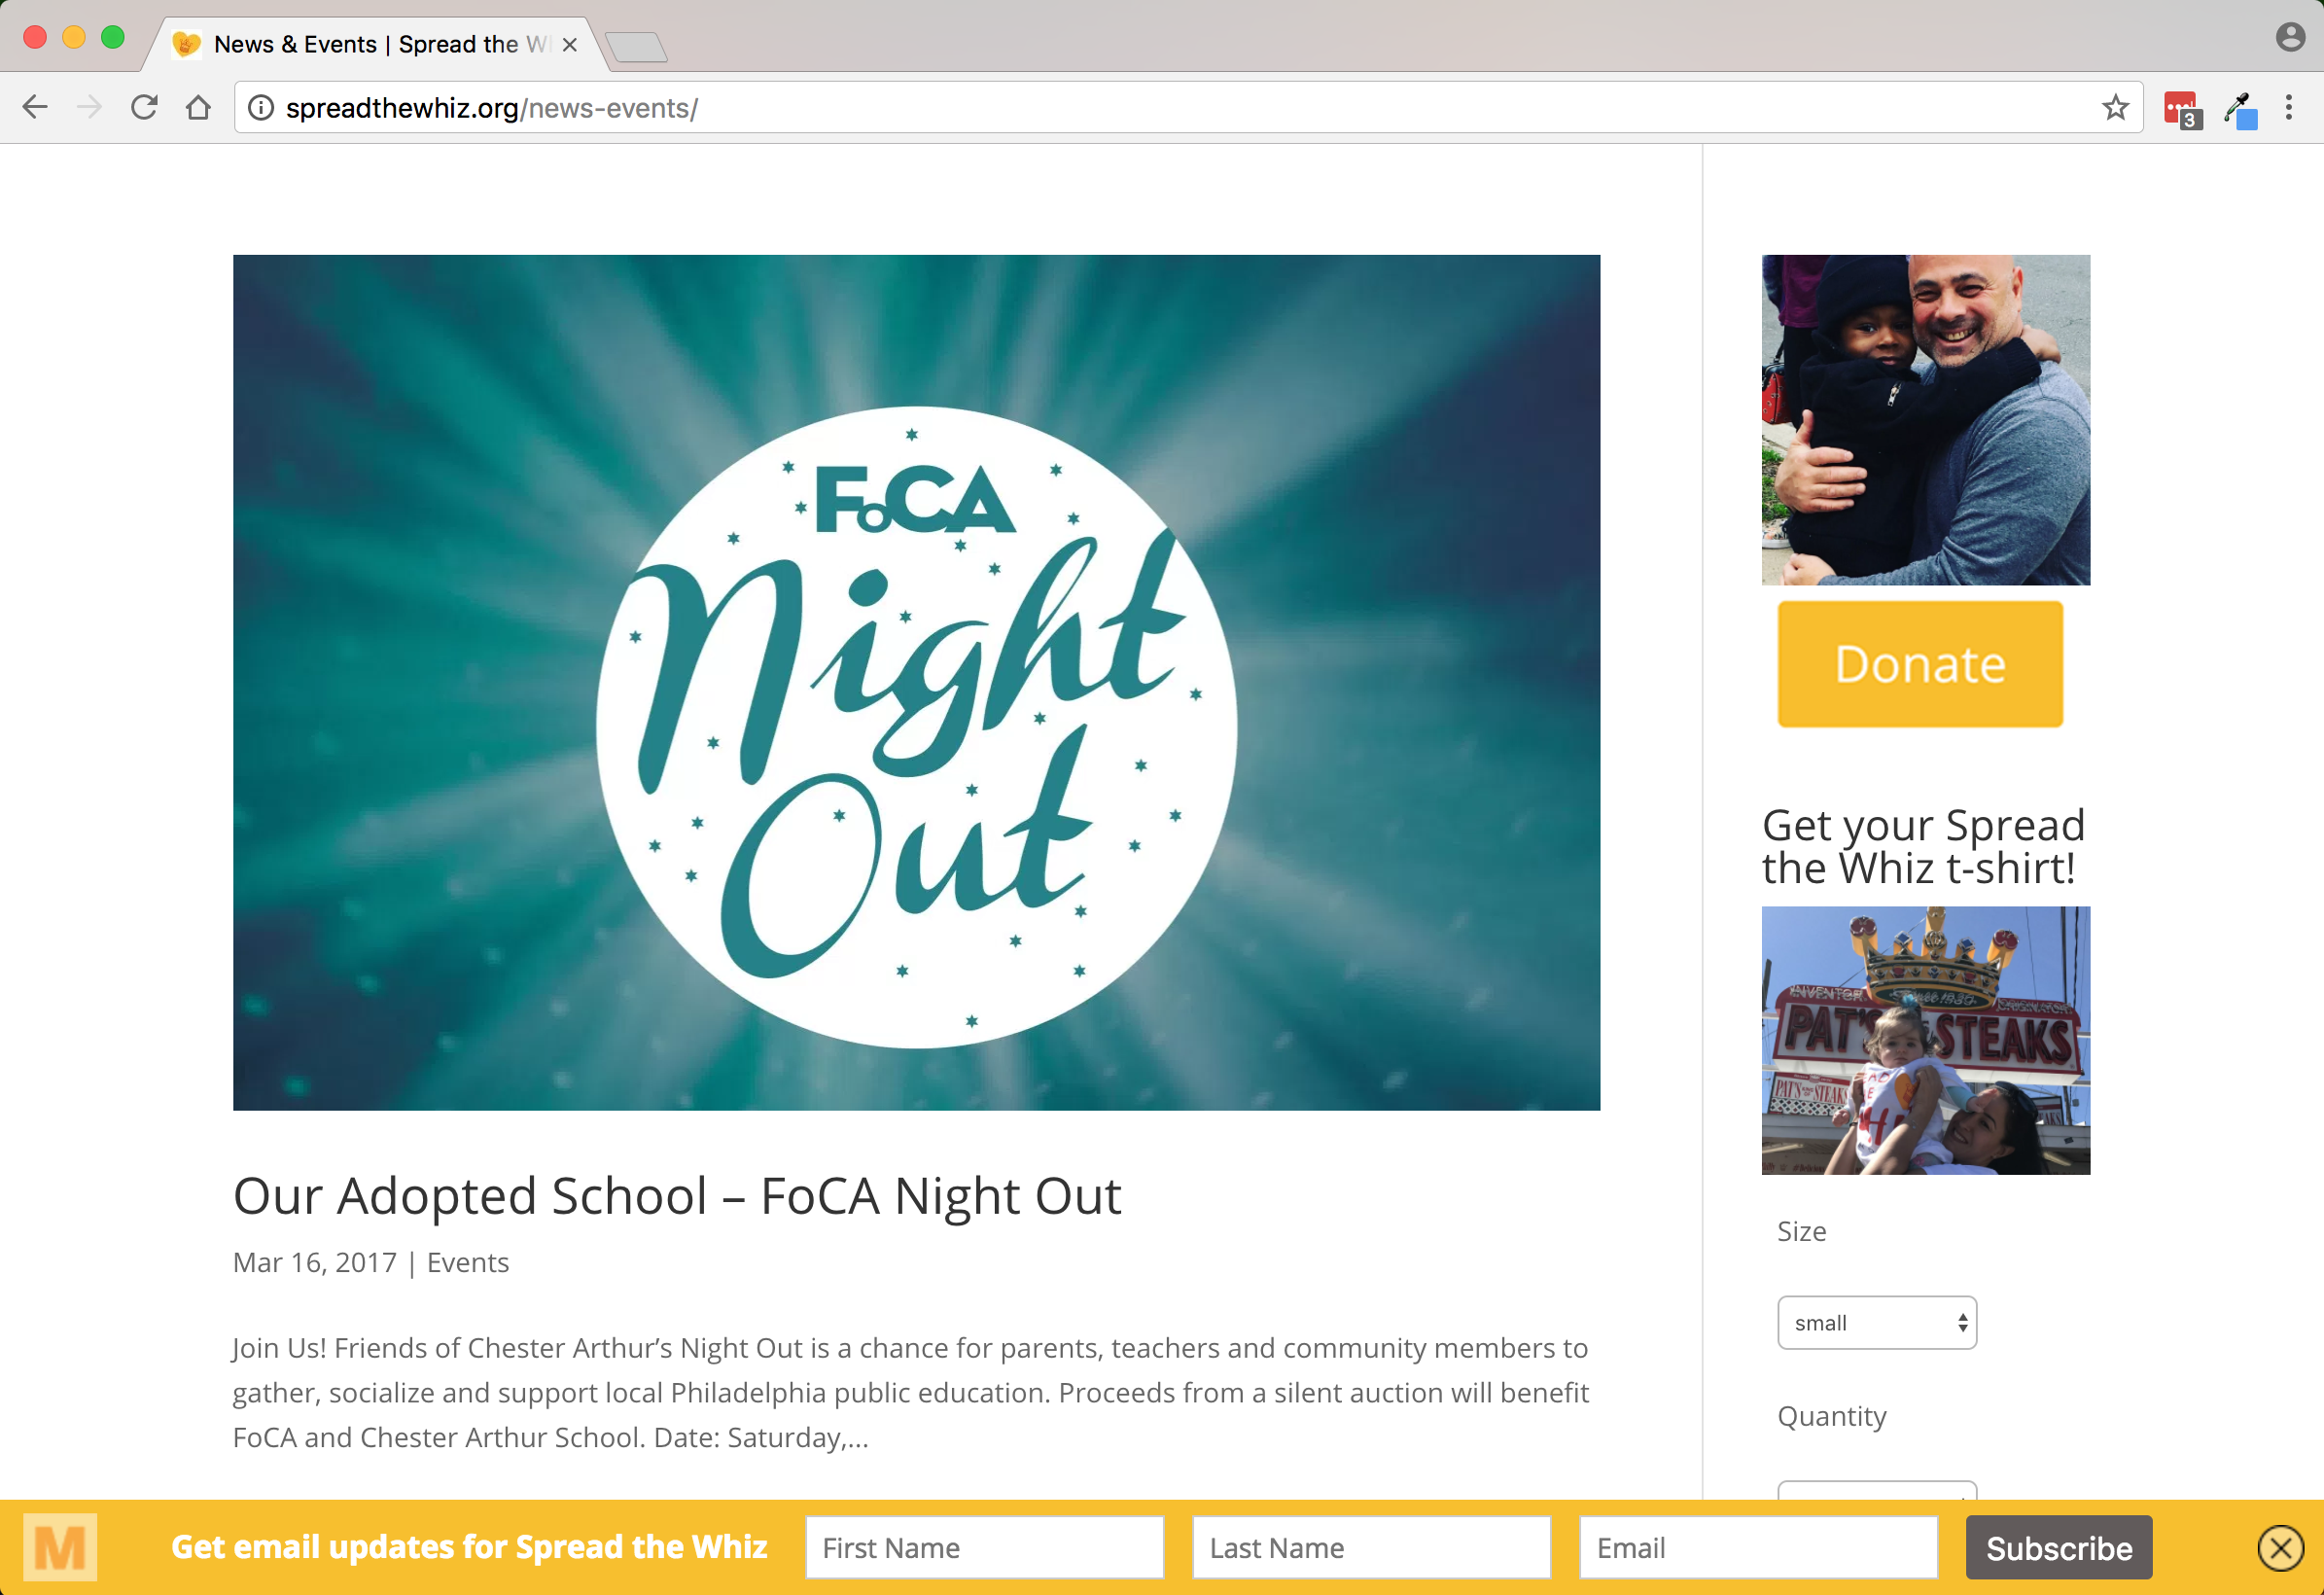 Spread the Whiz Foundation news & events page